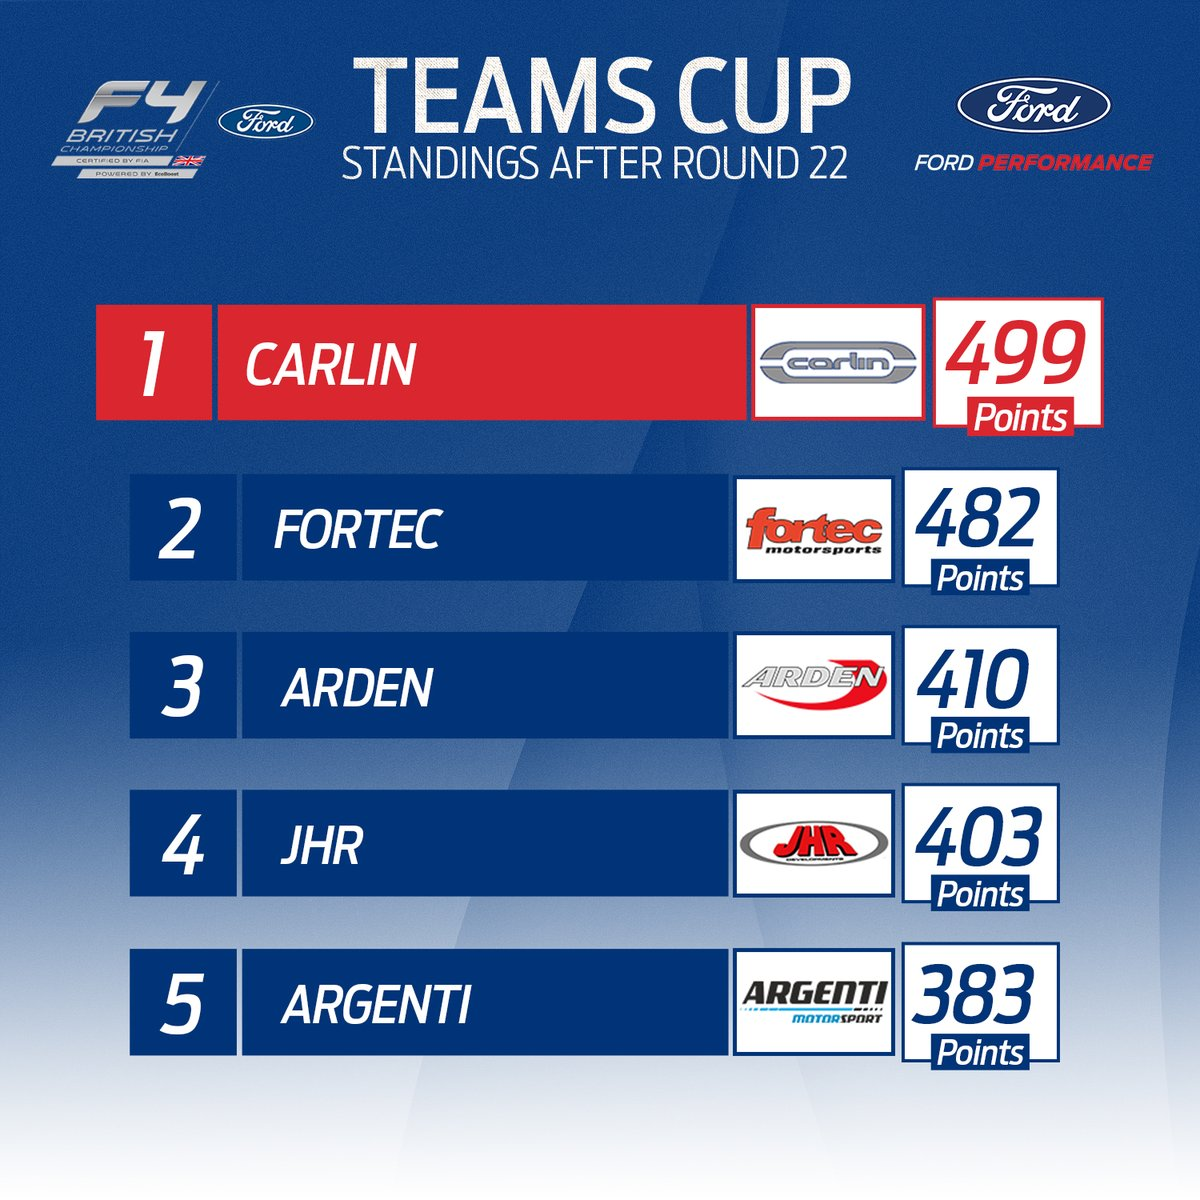 TEAMS CUP 🏆  There's a change at the top - @CarlinRacing leapfrog @FortecM! 📈  And we're on course to get every team above the 4⃣0⃣0⃣ point mark before the season's end! 👀  #BritishF4 | #FordPerformance https://t.co/HWnM3RlR75